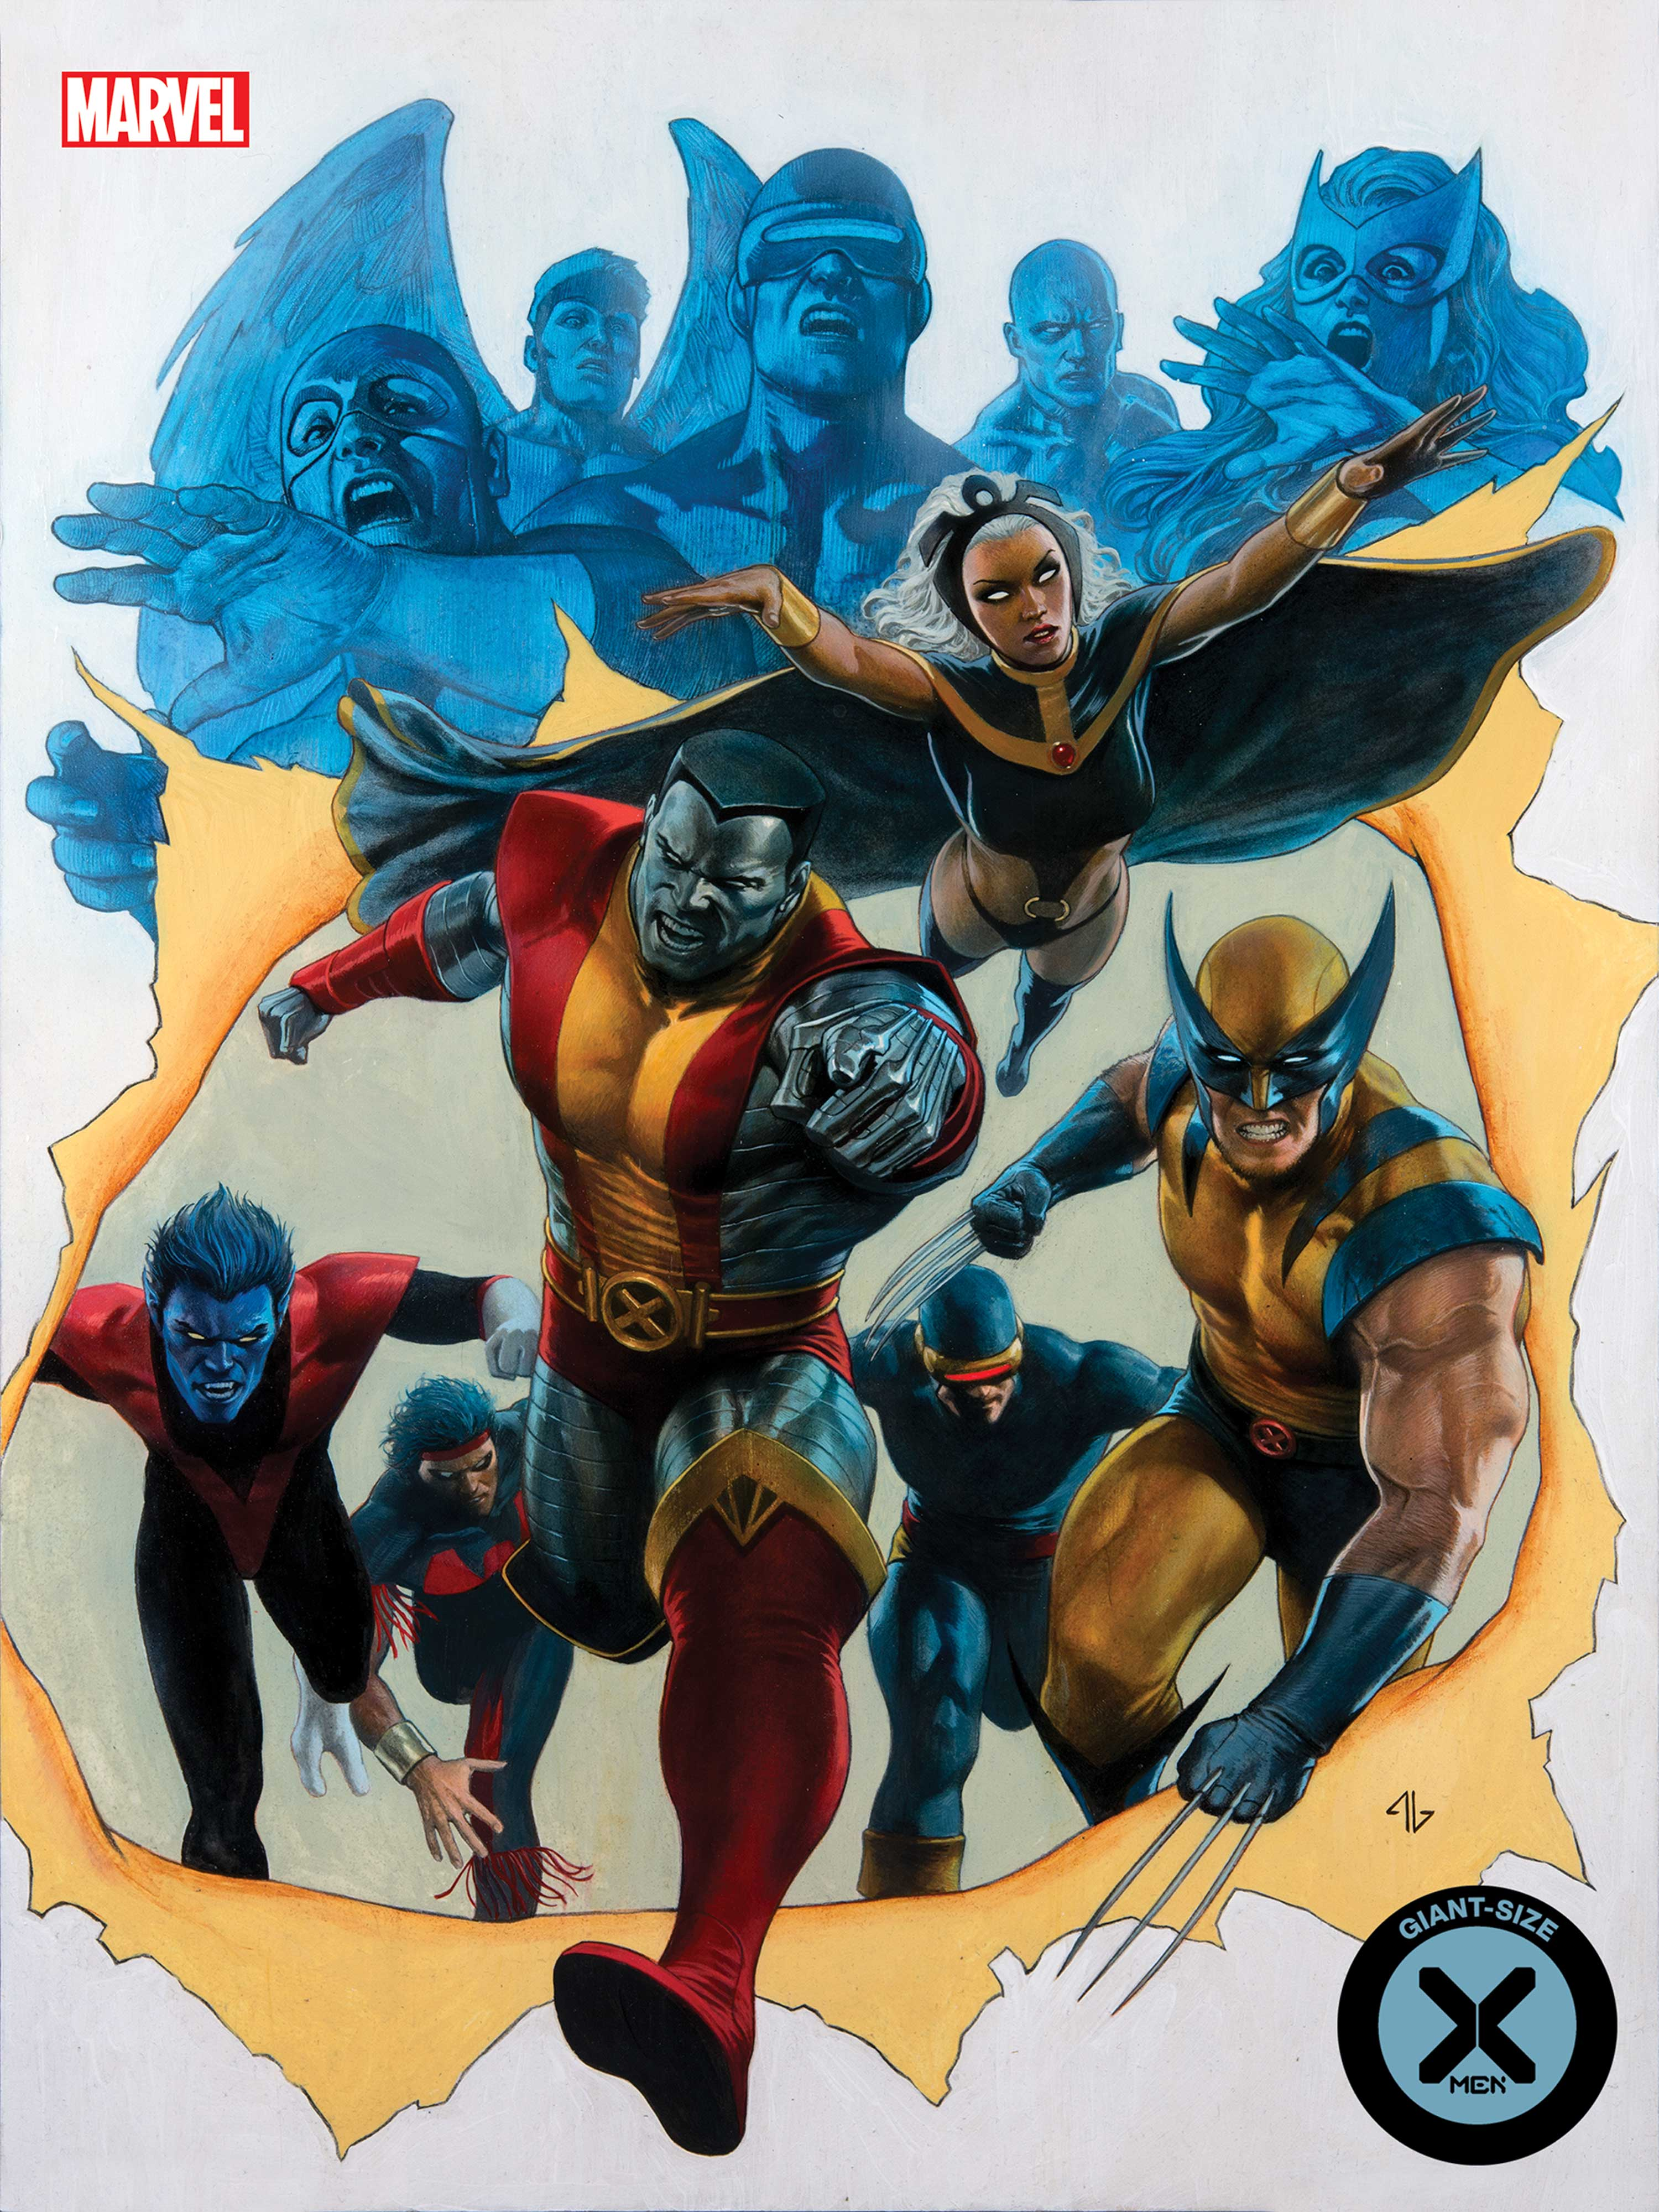 GIANT-SIZE X-MEN: TRIBUTE TO WEIN & COCKRUM 1 (2020) #1